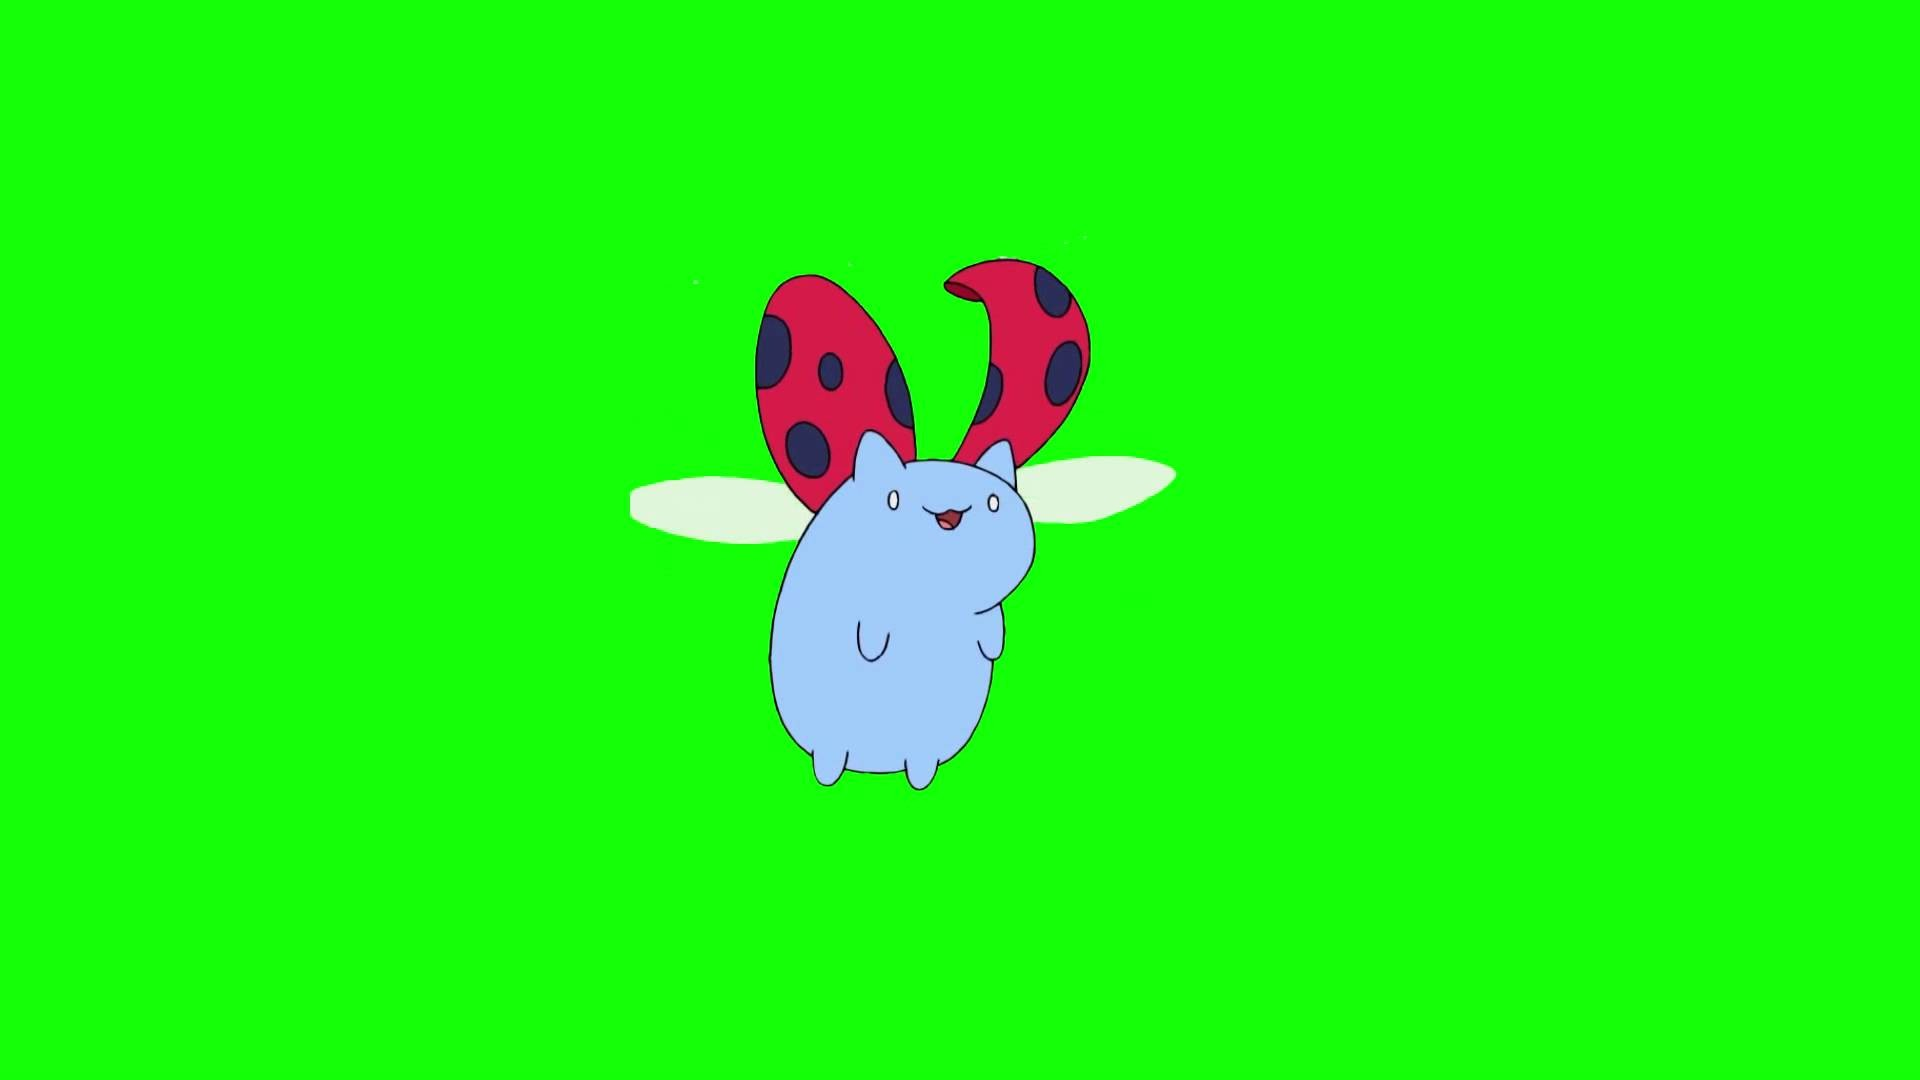 Res: 1920x1080, Bravest Warriors - Catbug Green Screen - (DOWNLOAD)